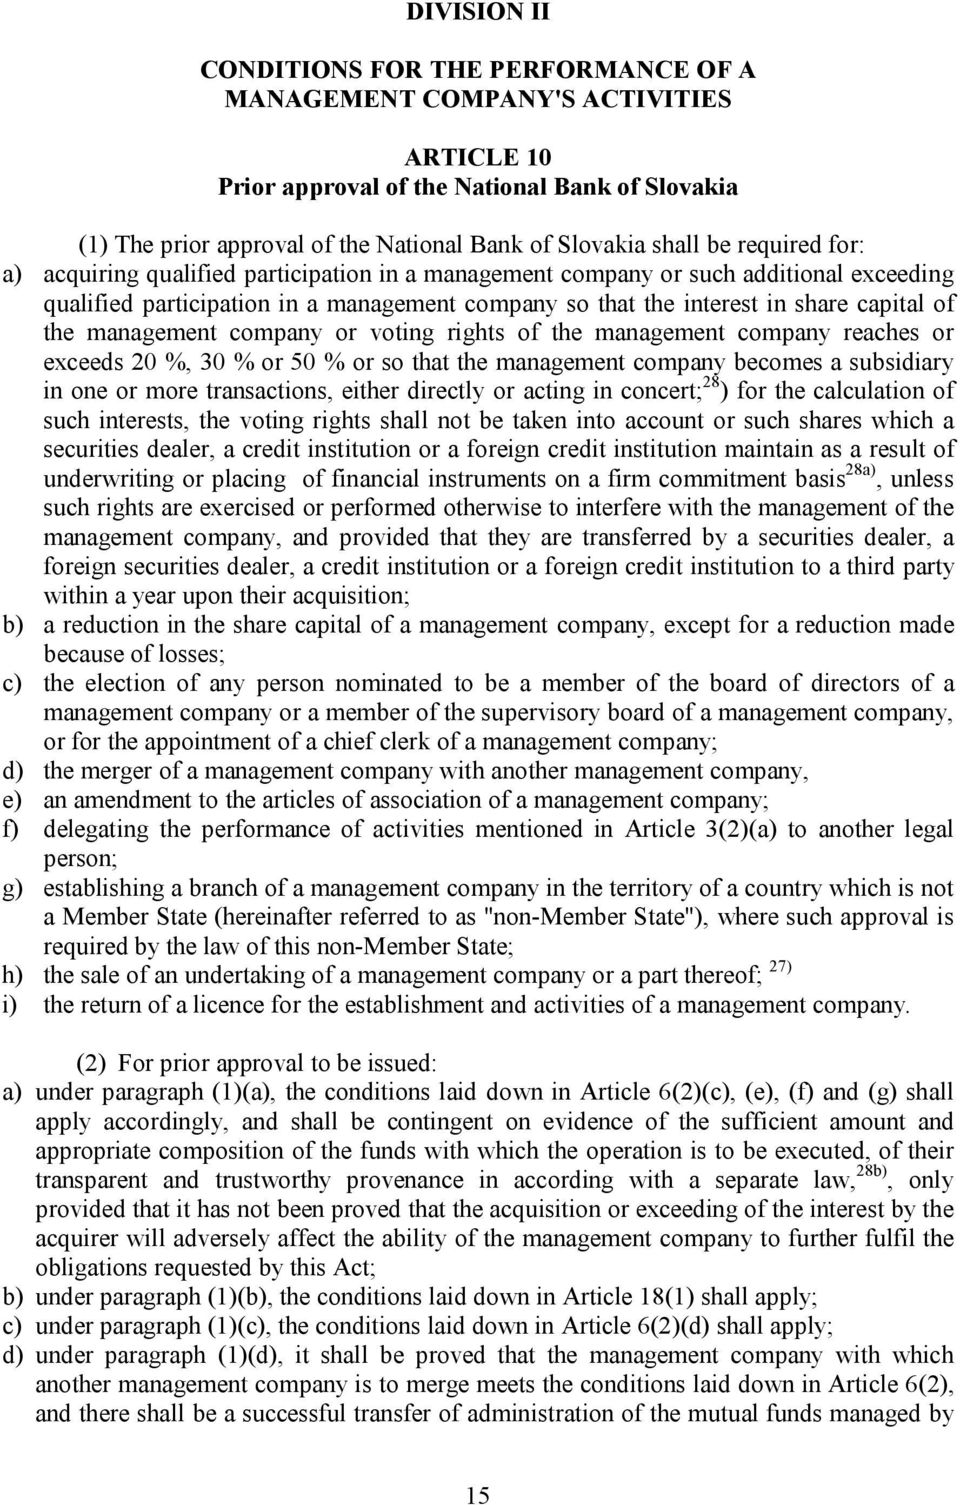 of the management company or voting rights of the management company reaches or exceeds 20 %, 30 % or 50 % or so that the management company becomes a subsidiary in one or more transactions, either